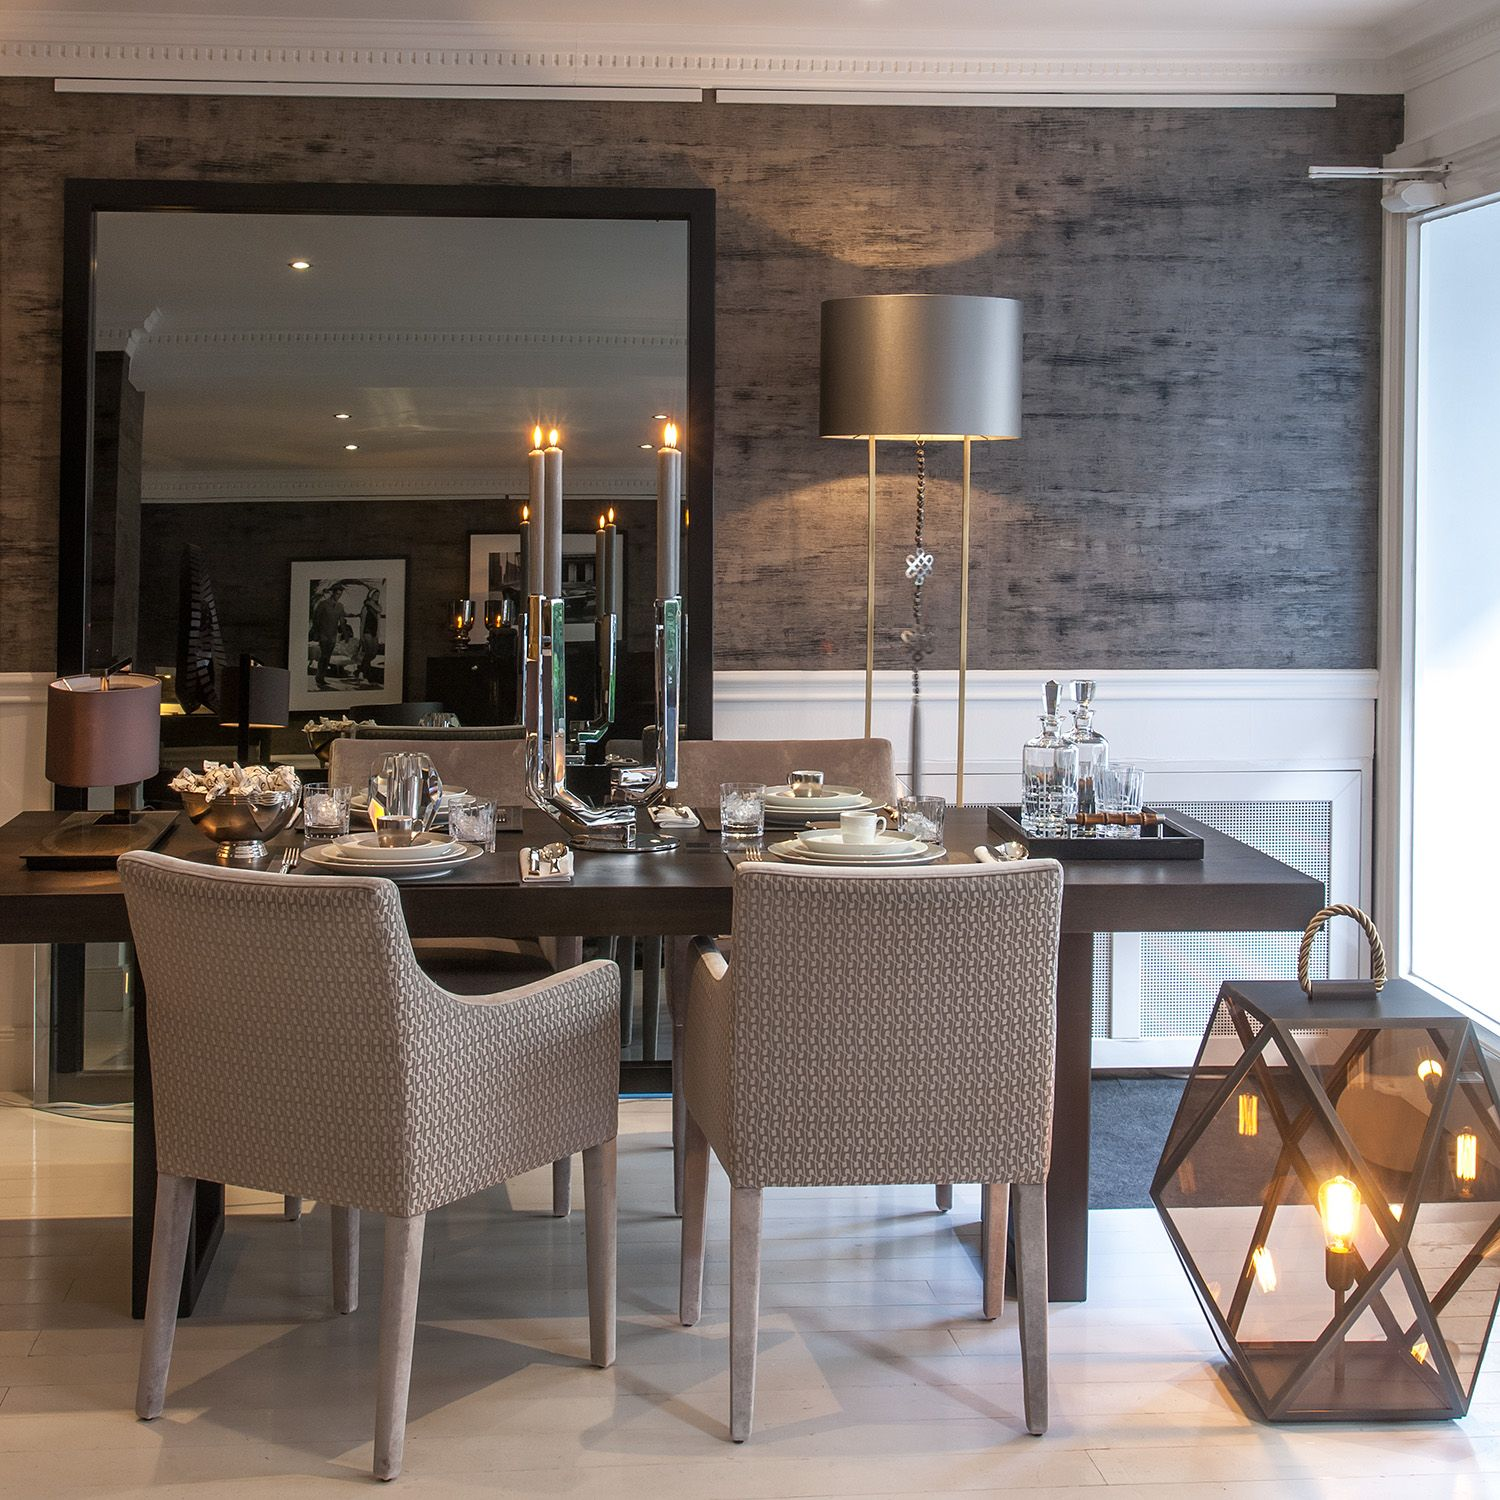 th2 torsten hallmann interior design hamburg germany dining room pinterest comedores. Black Bedroom Furniture Sets. Home Design Ideas